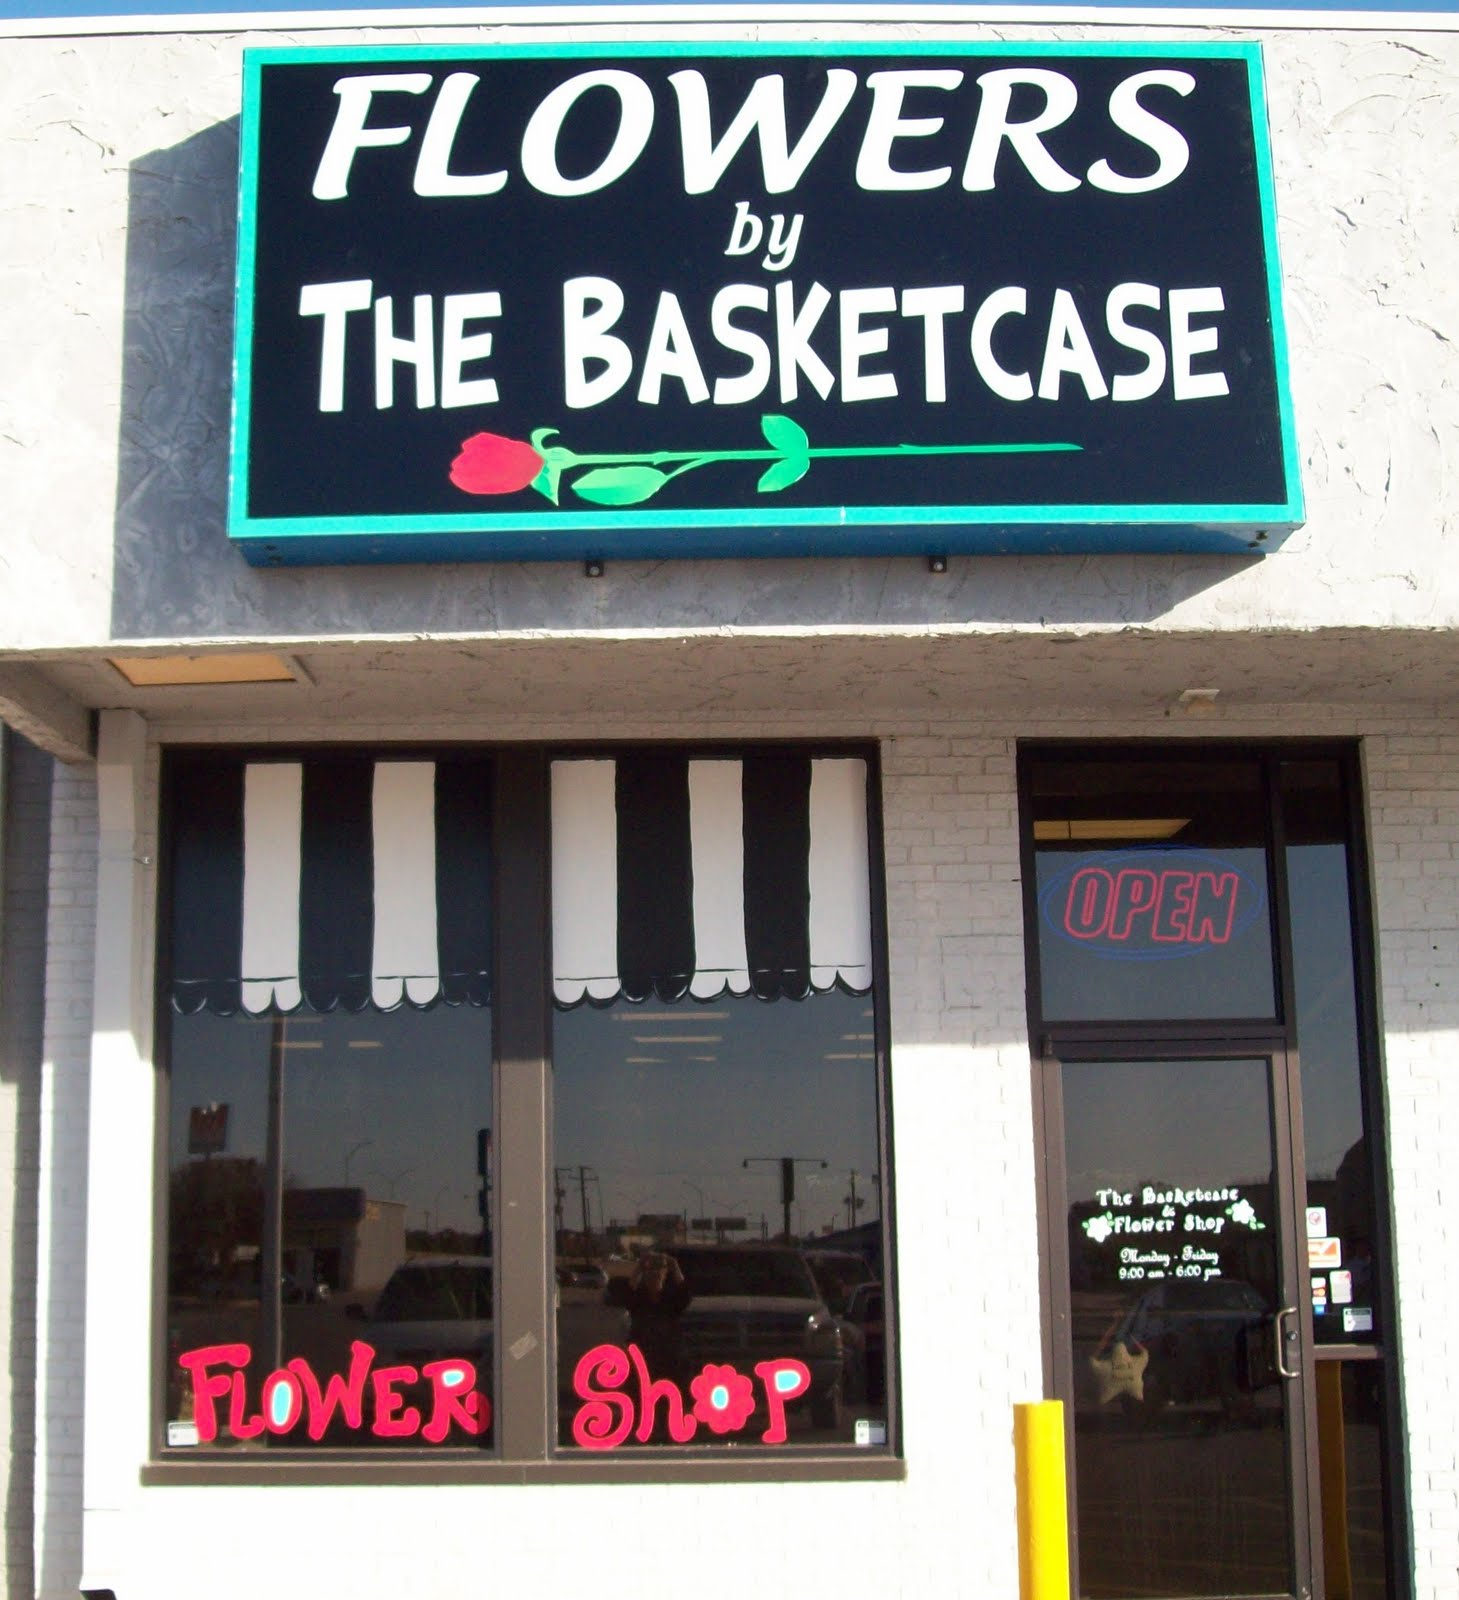 The Basketcase And Flower Shop: NEW SIGN